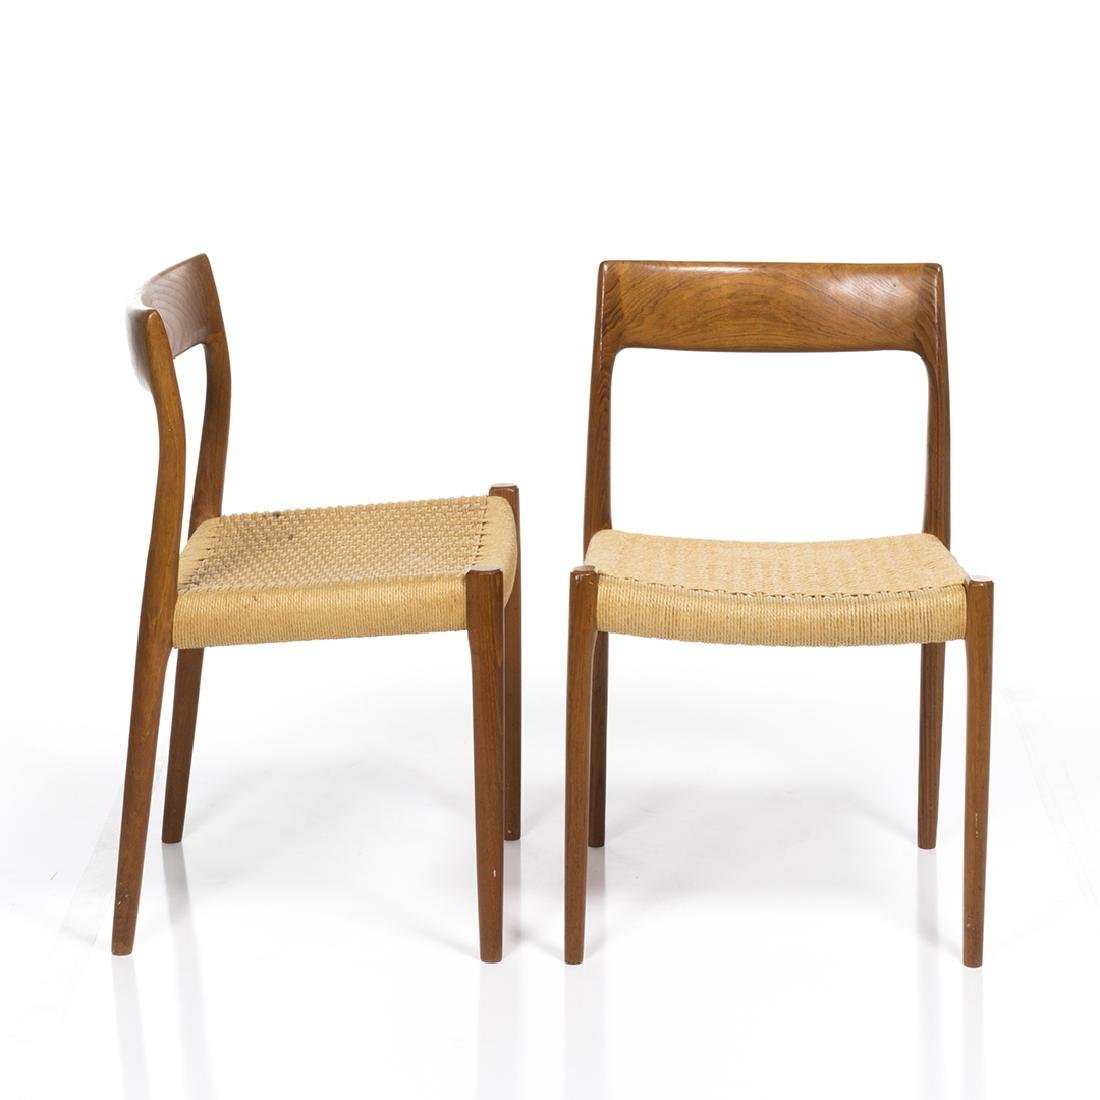 Niels Moller Model 77 Chairs (2) - 2